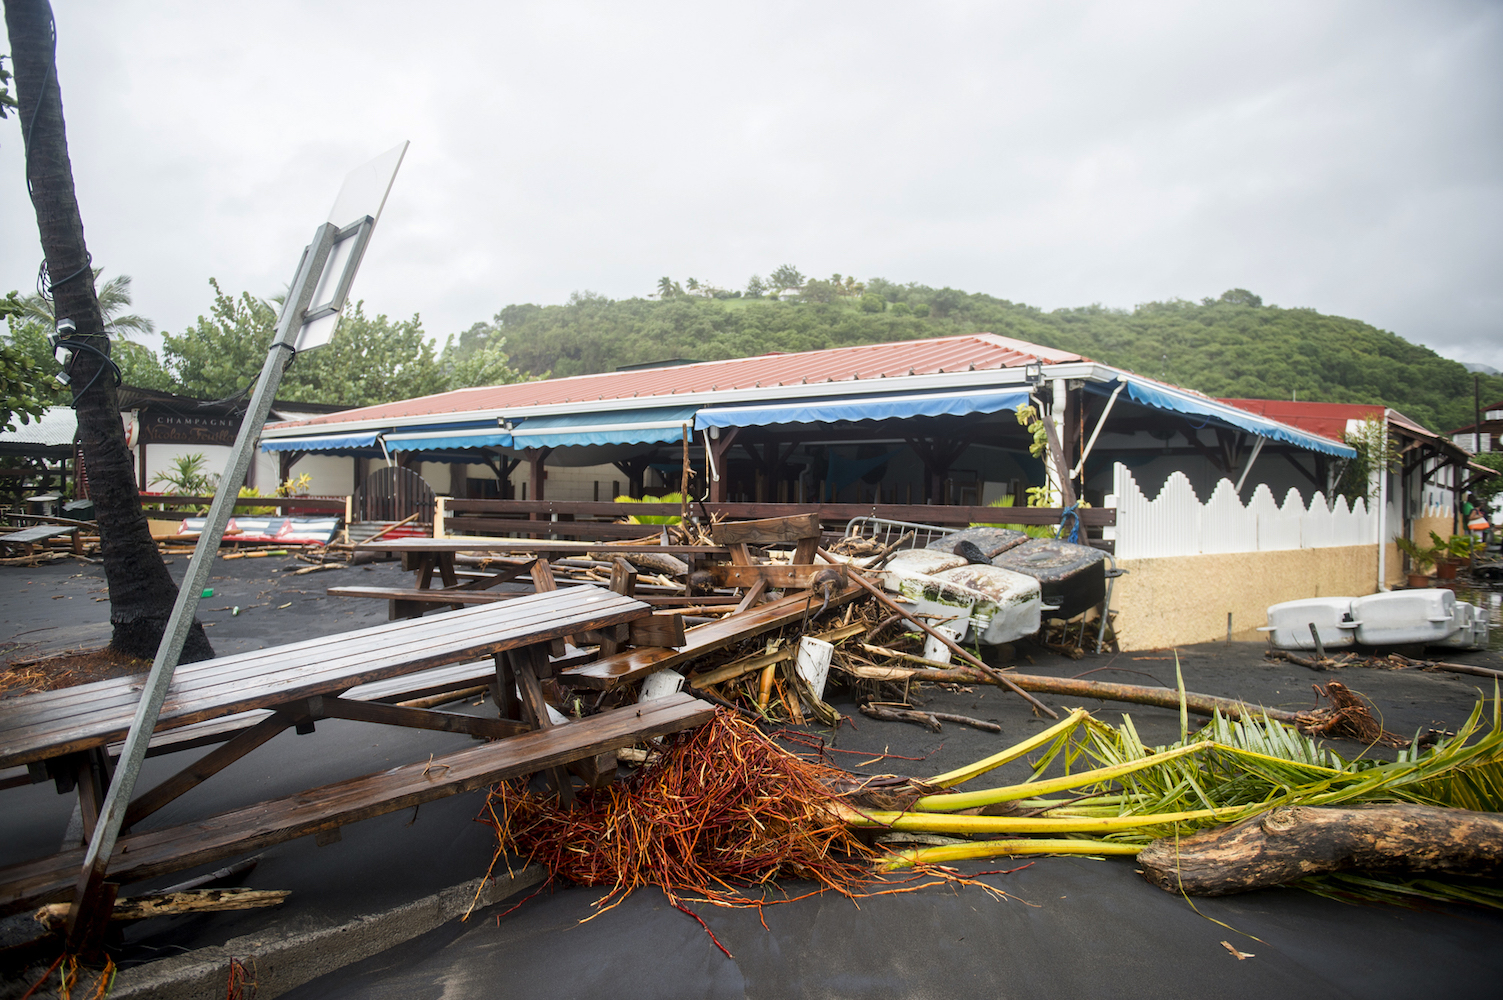 "<div class=""meta image-caption""><div class=""origin-logo origin-image ktrk""><span>ktrk</span></div><span class=""caption-text"">A picture shows damages at a restaurant in Le Carbet, on the French Caribbean island of Martinique, after it was hit by Hurricane Maria, on September 19, 2017. (LIONEL CHAMOISEAU/AFP/Getty)</span></div>"